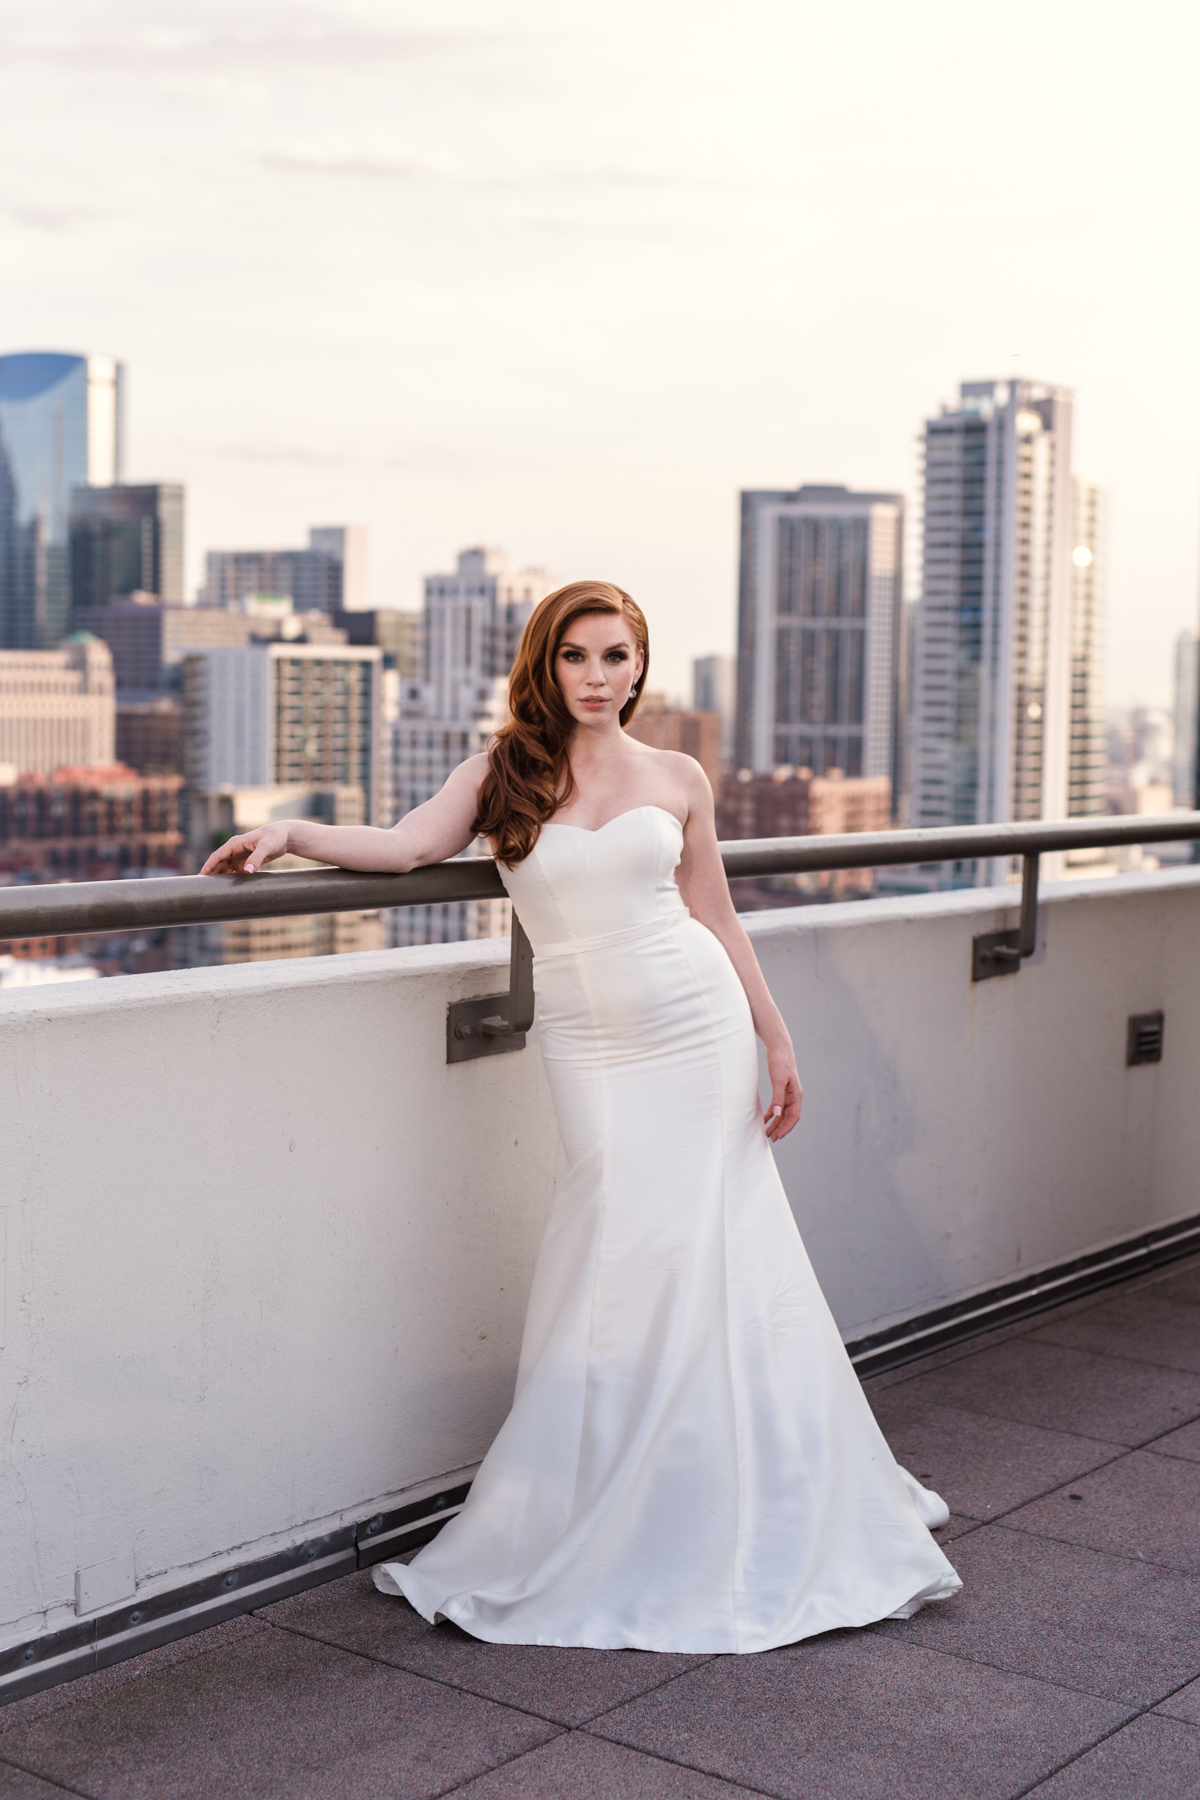 Rooftop-bridal-shoot-by-Emma-Mullins-Photography-24